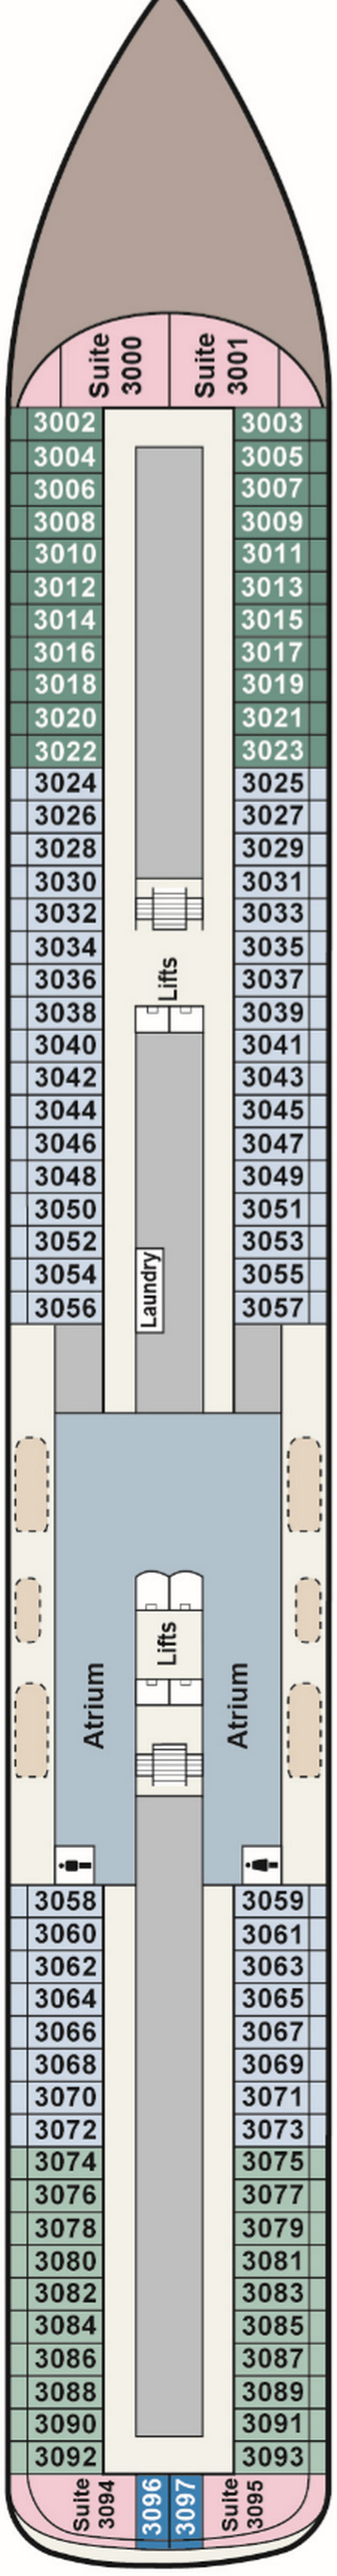 Viking Sky Deck 3 layout